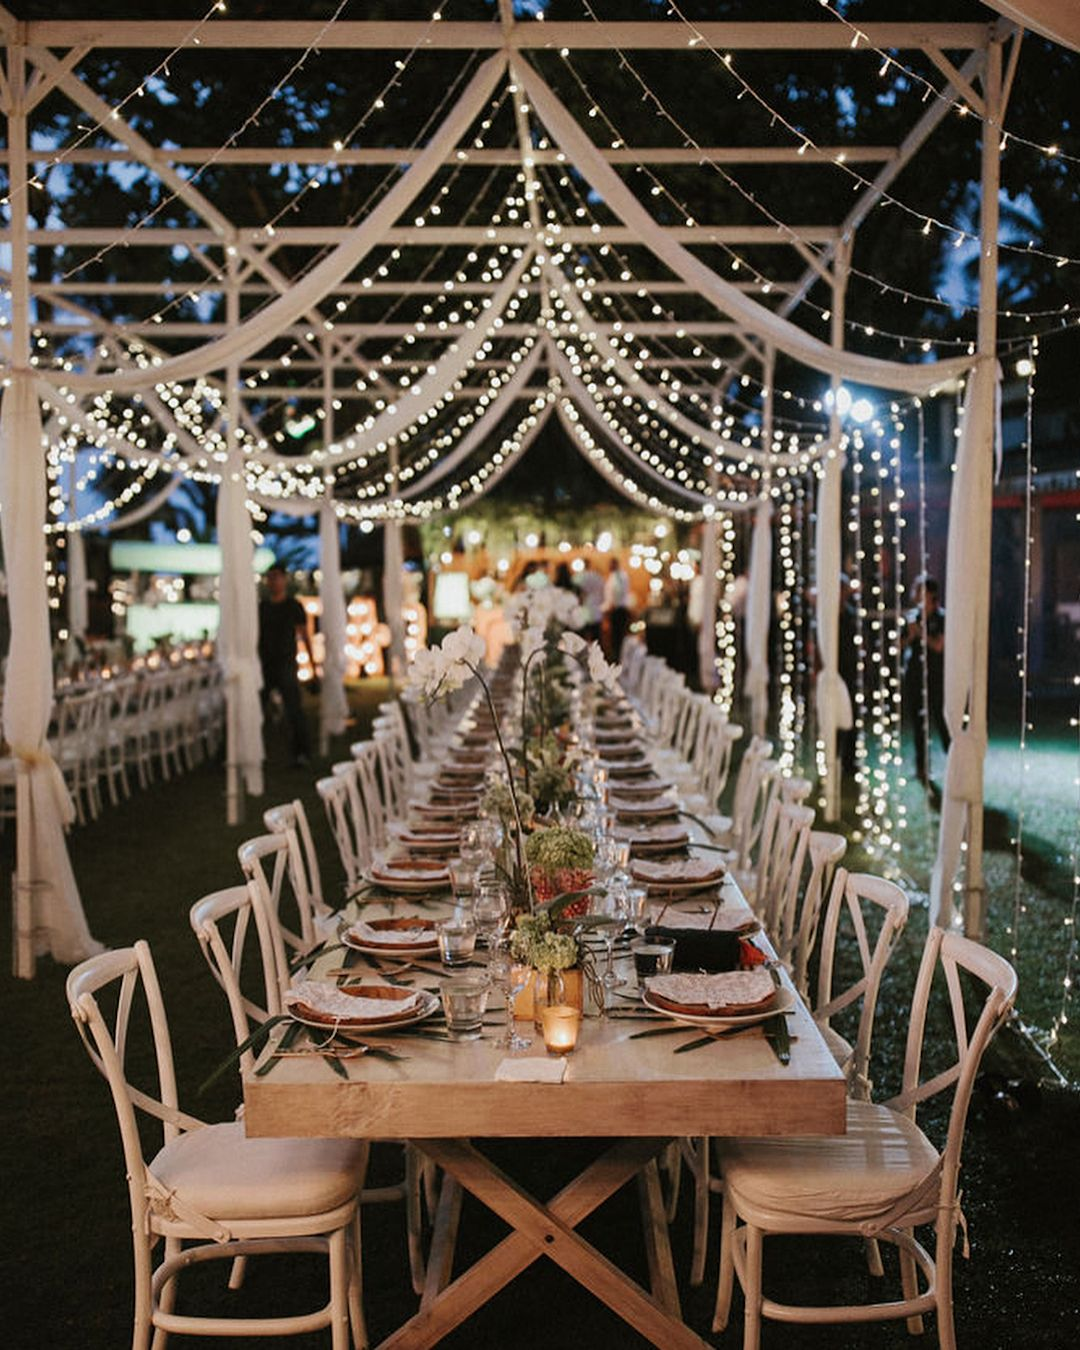 Straight out of a storybook we are totally in love with this cozy straight out of a storybook we are totally in love with this cozy outdoor wedding decor junglespirit Choice Image